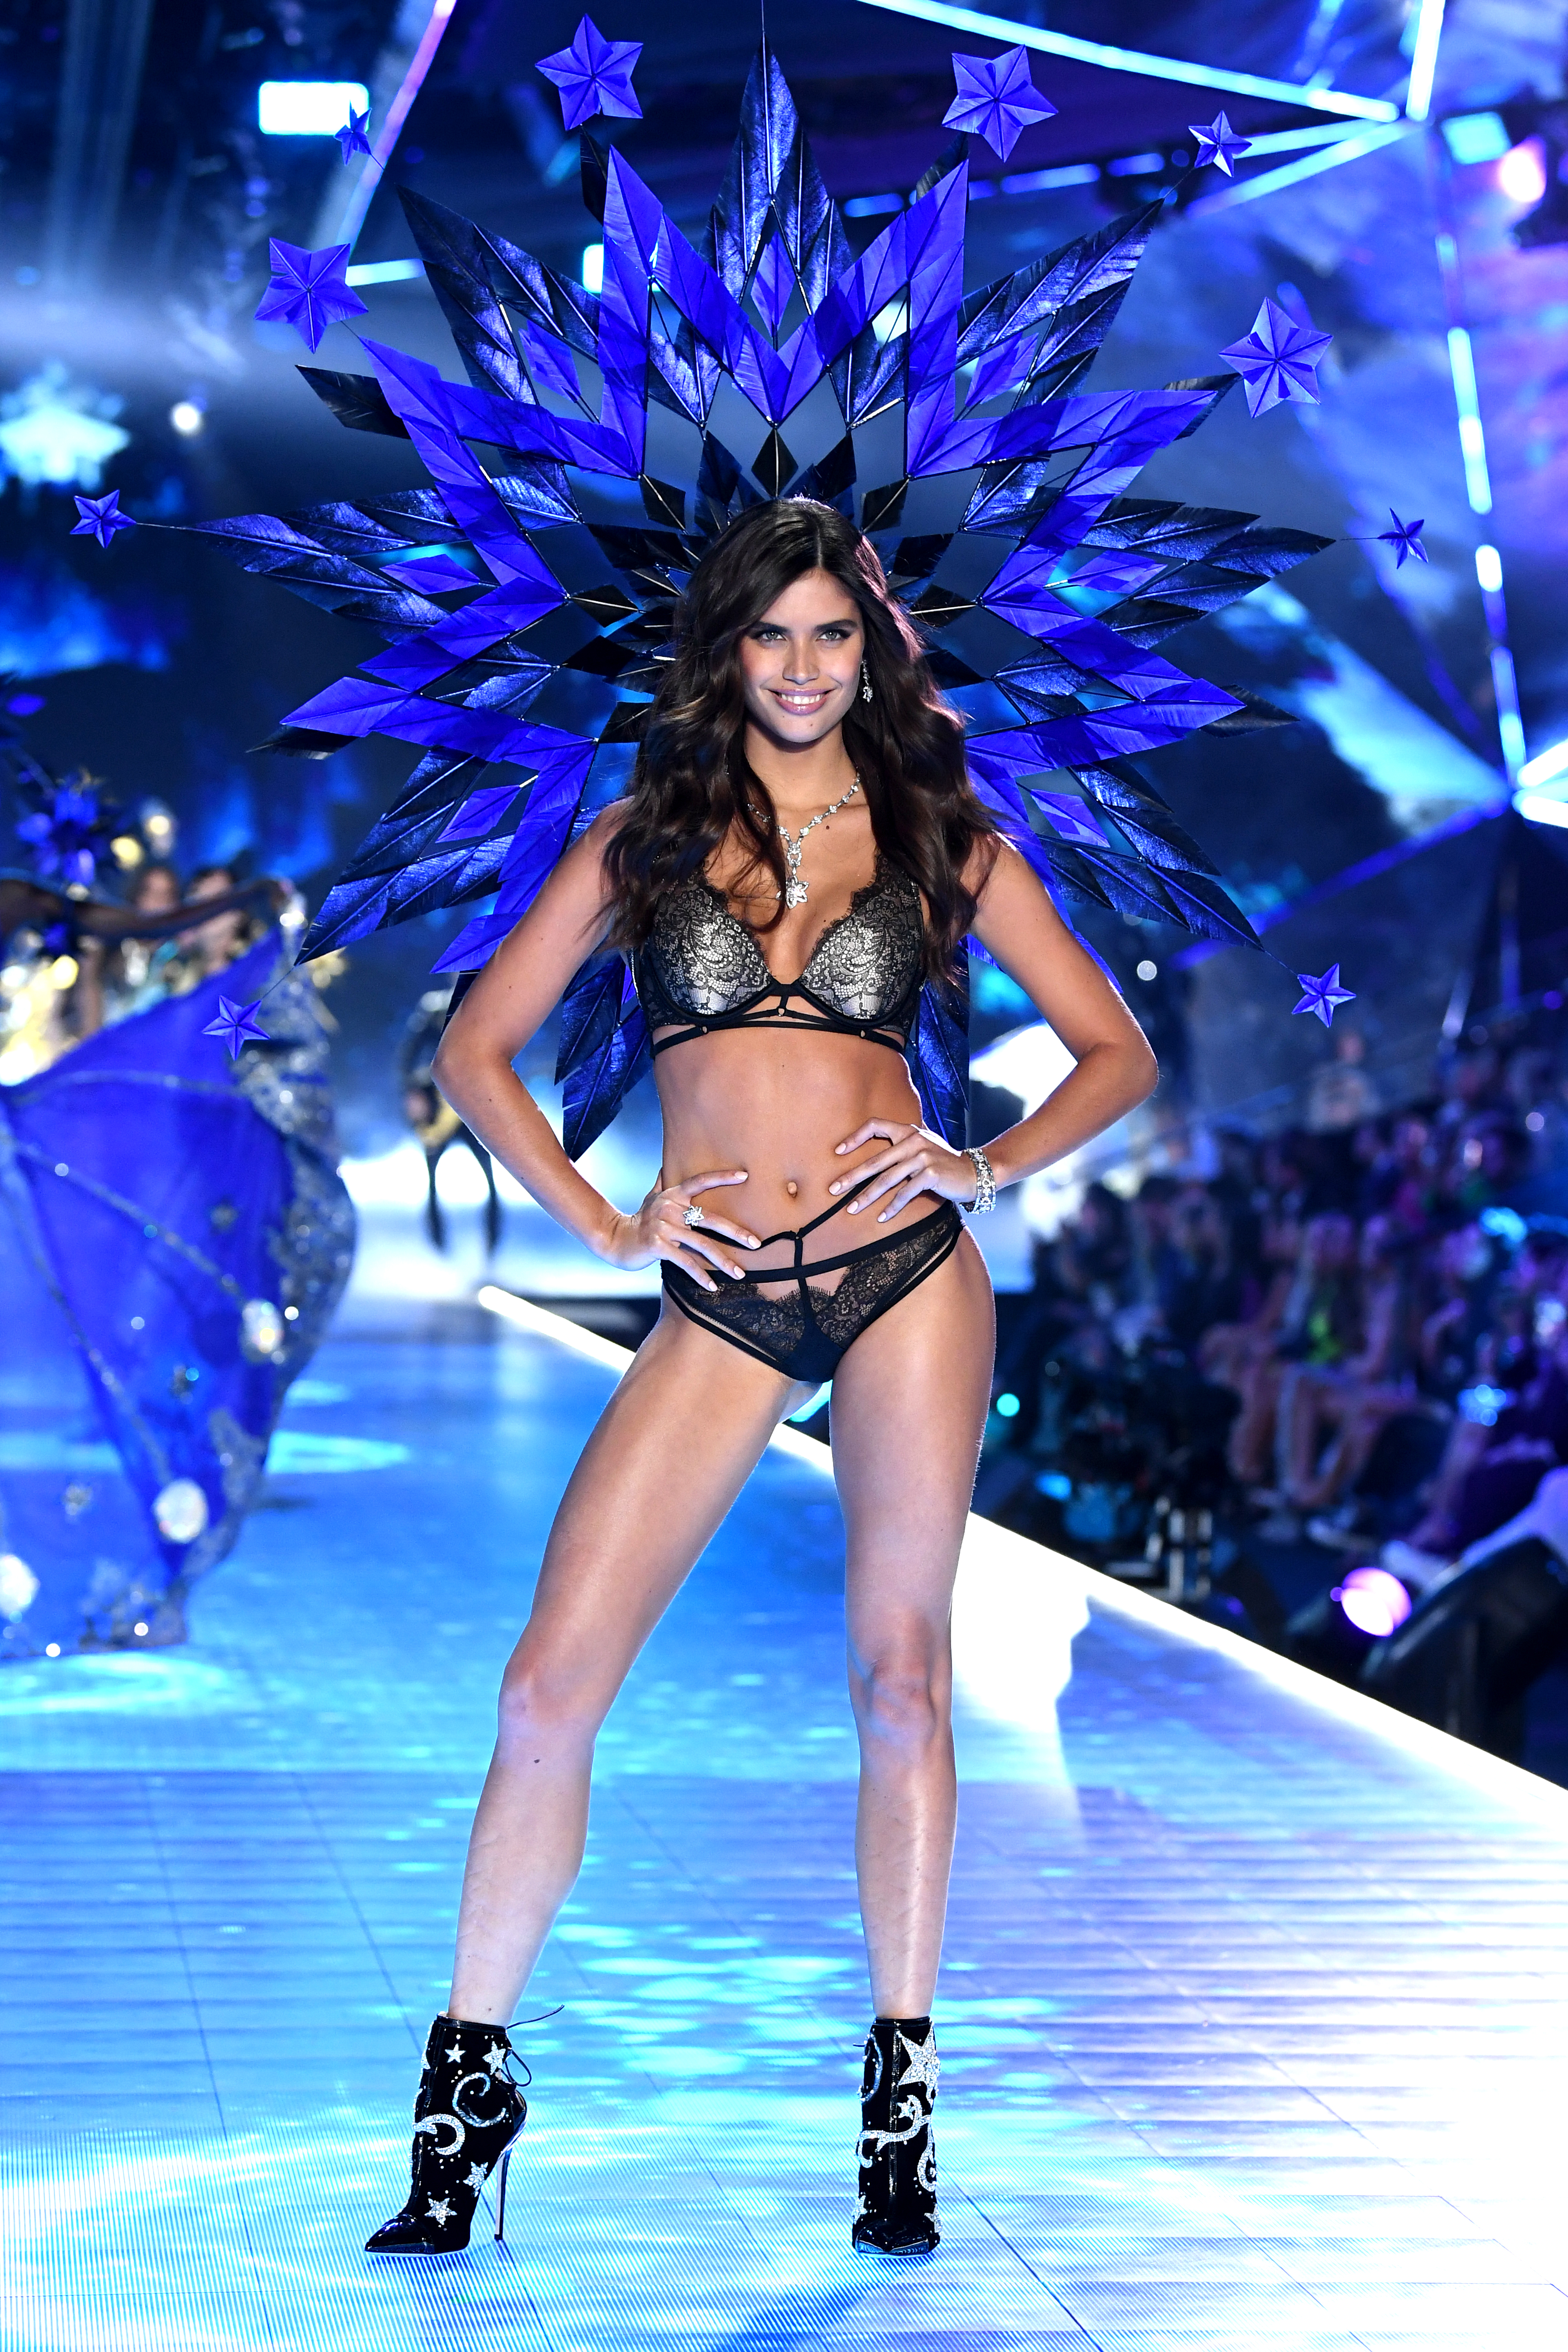 Sara Sampaio walks the runway during the 2018 Victoria's Secret Fashion Show at Pier 94 on November 8, 2018, in New York City. (Getty Images)